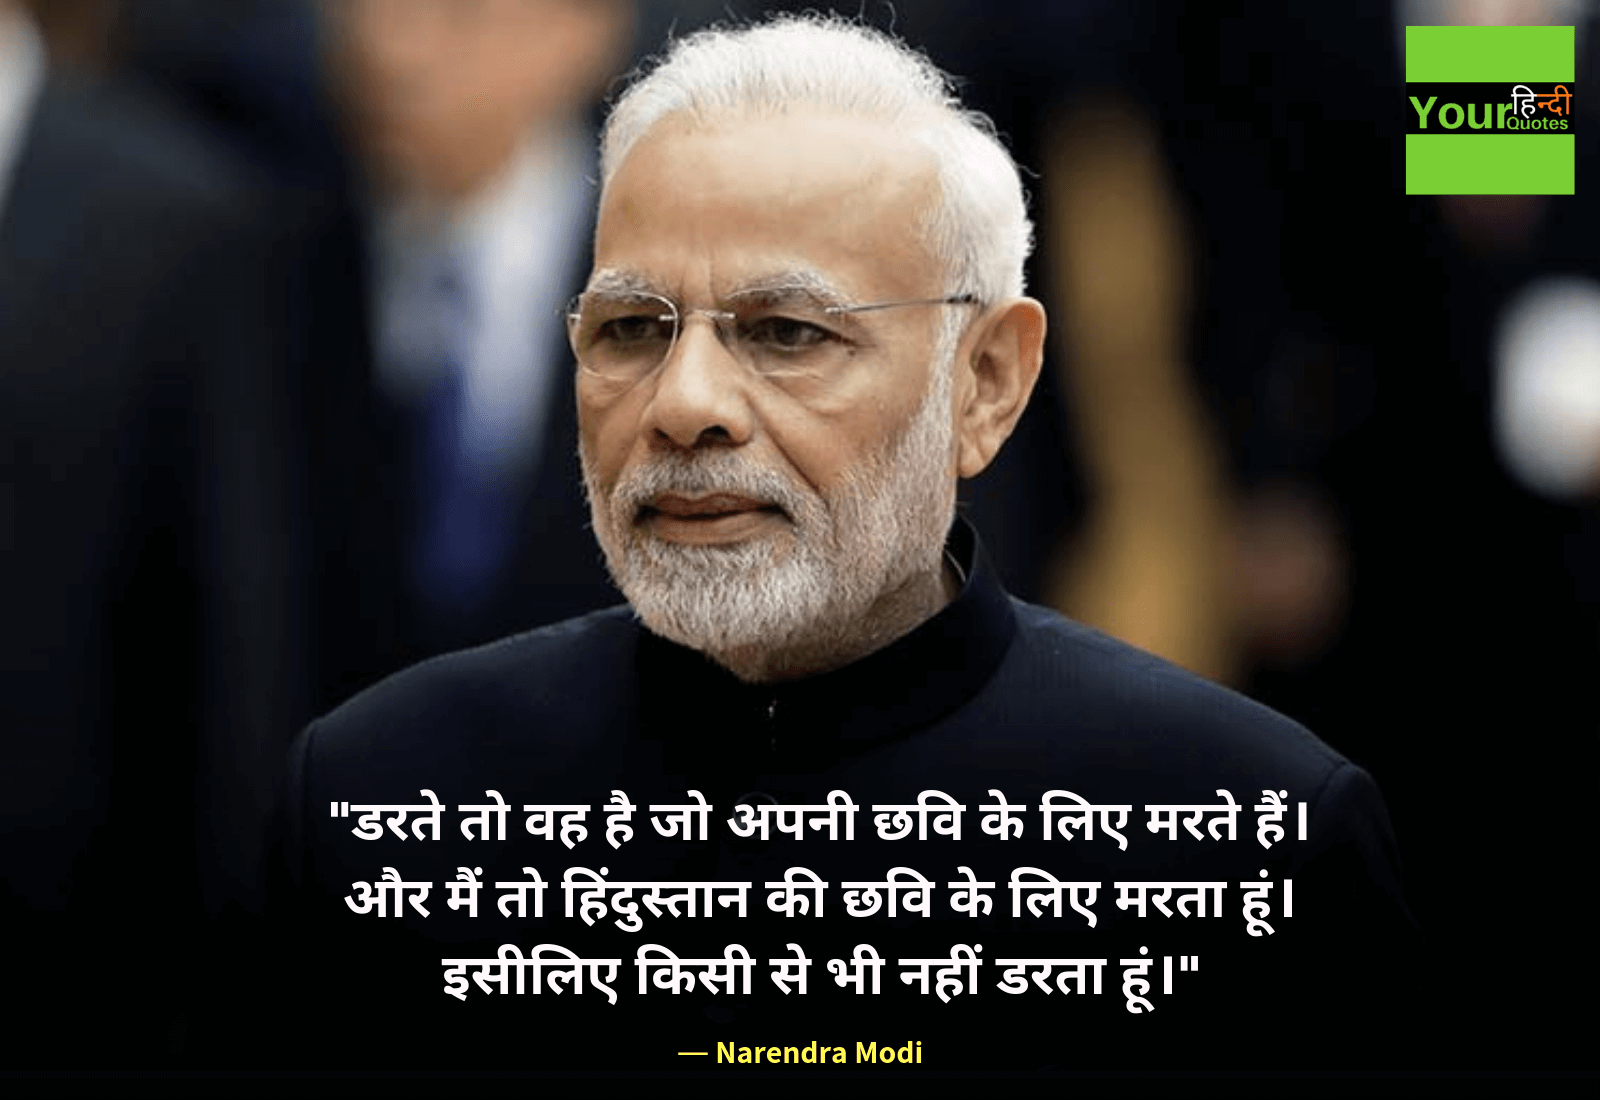 Quotes Of Narendra Modi in Hindi